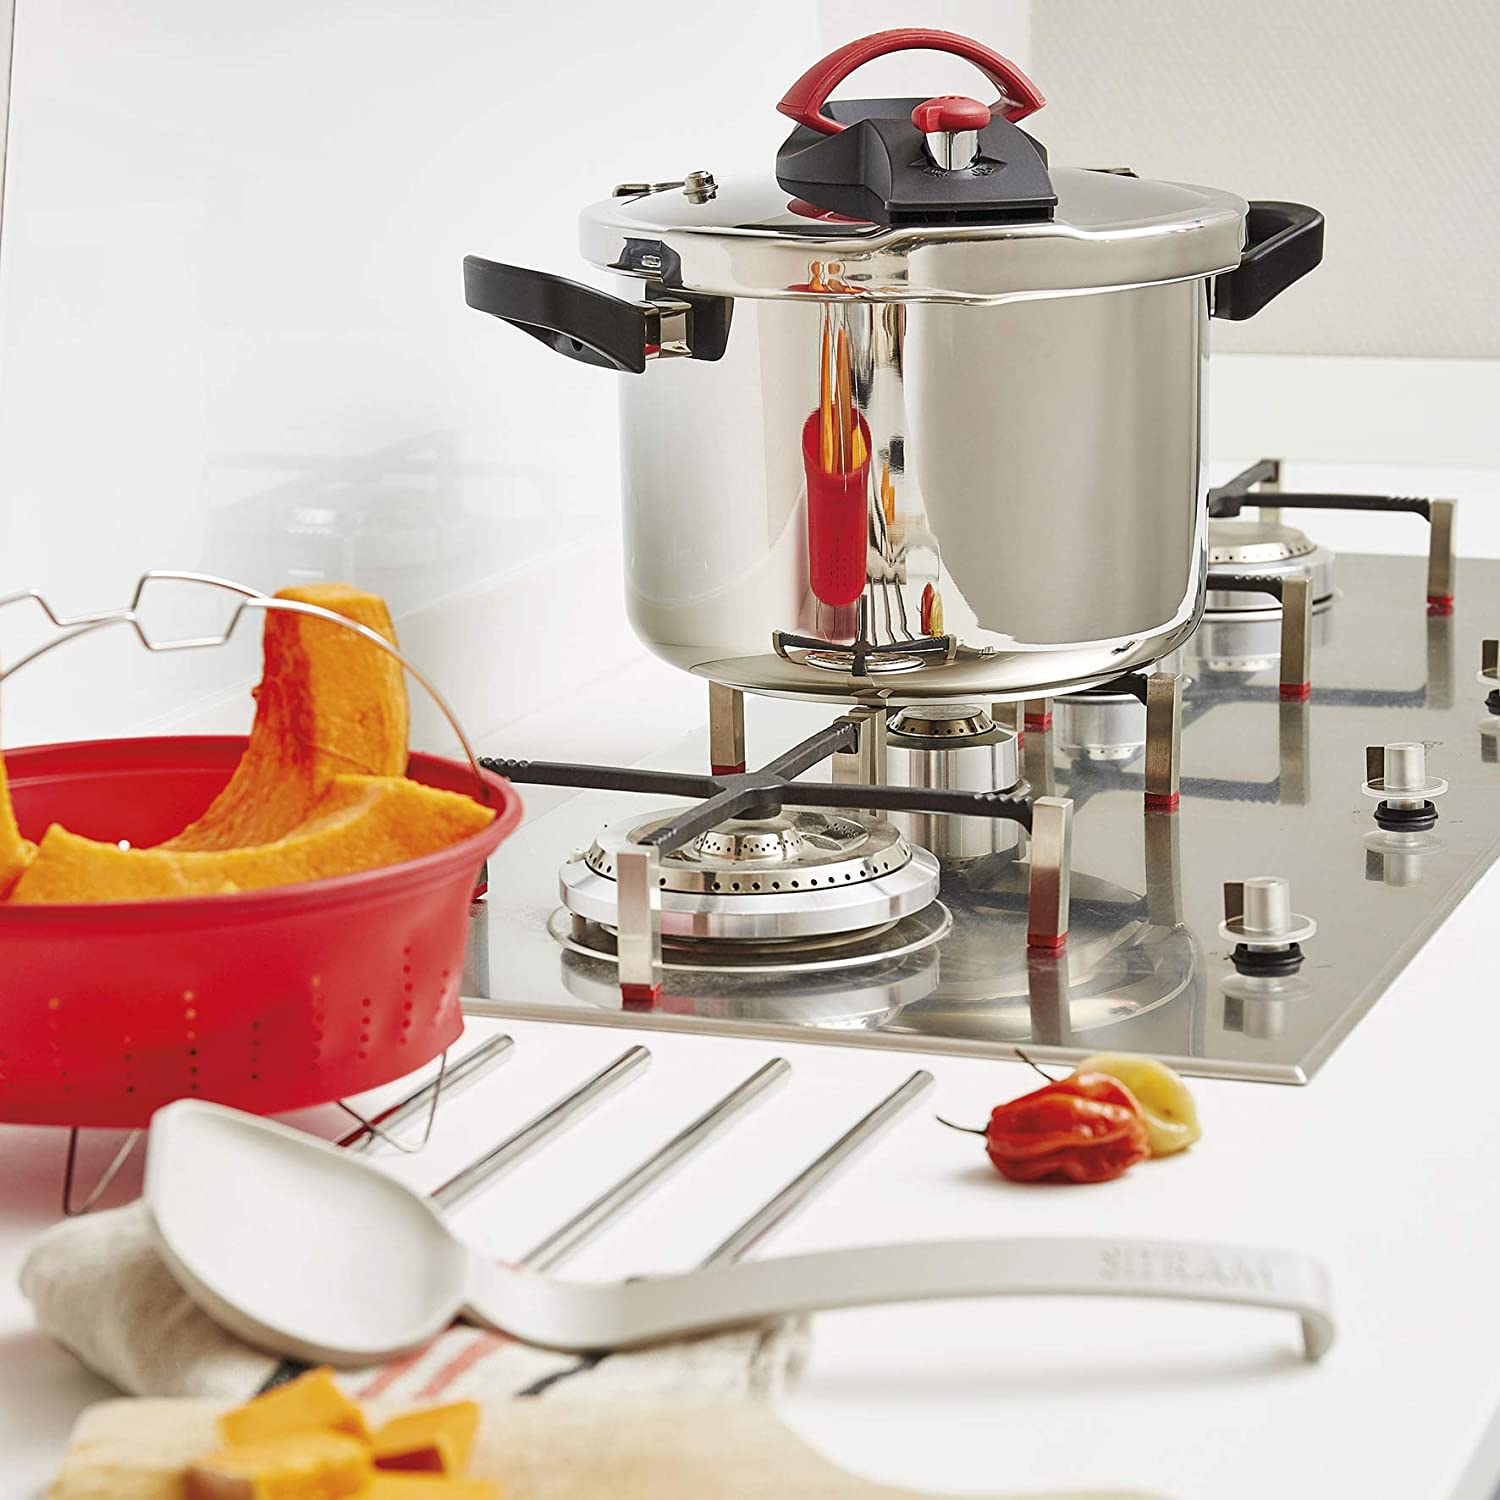 Use Sitram Stainless Steel Induction Pressure Cooker for Gas and Induction Stove